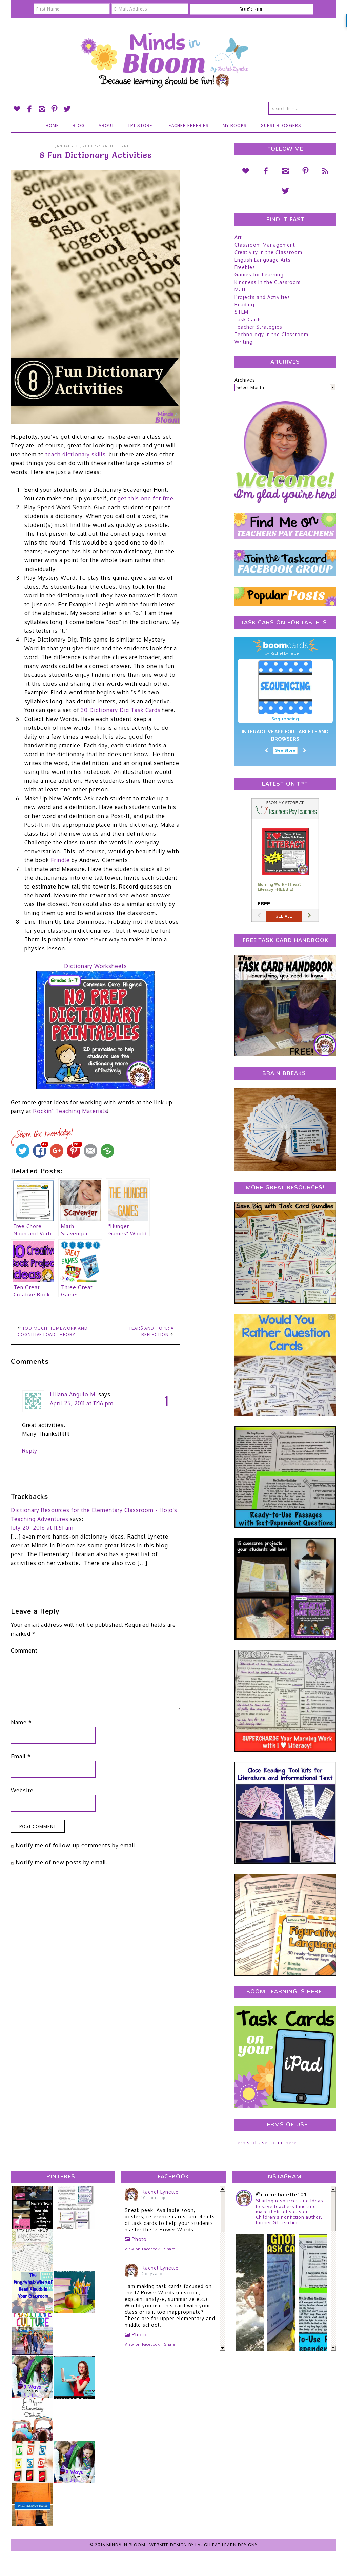 hight resolution of Dictionary Skills Lesson Plans \u0026 Worksheets   Lesson Planet